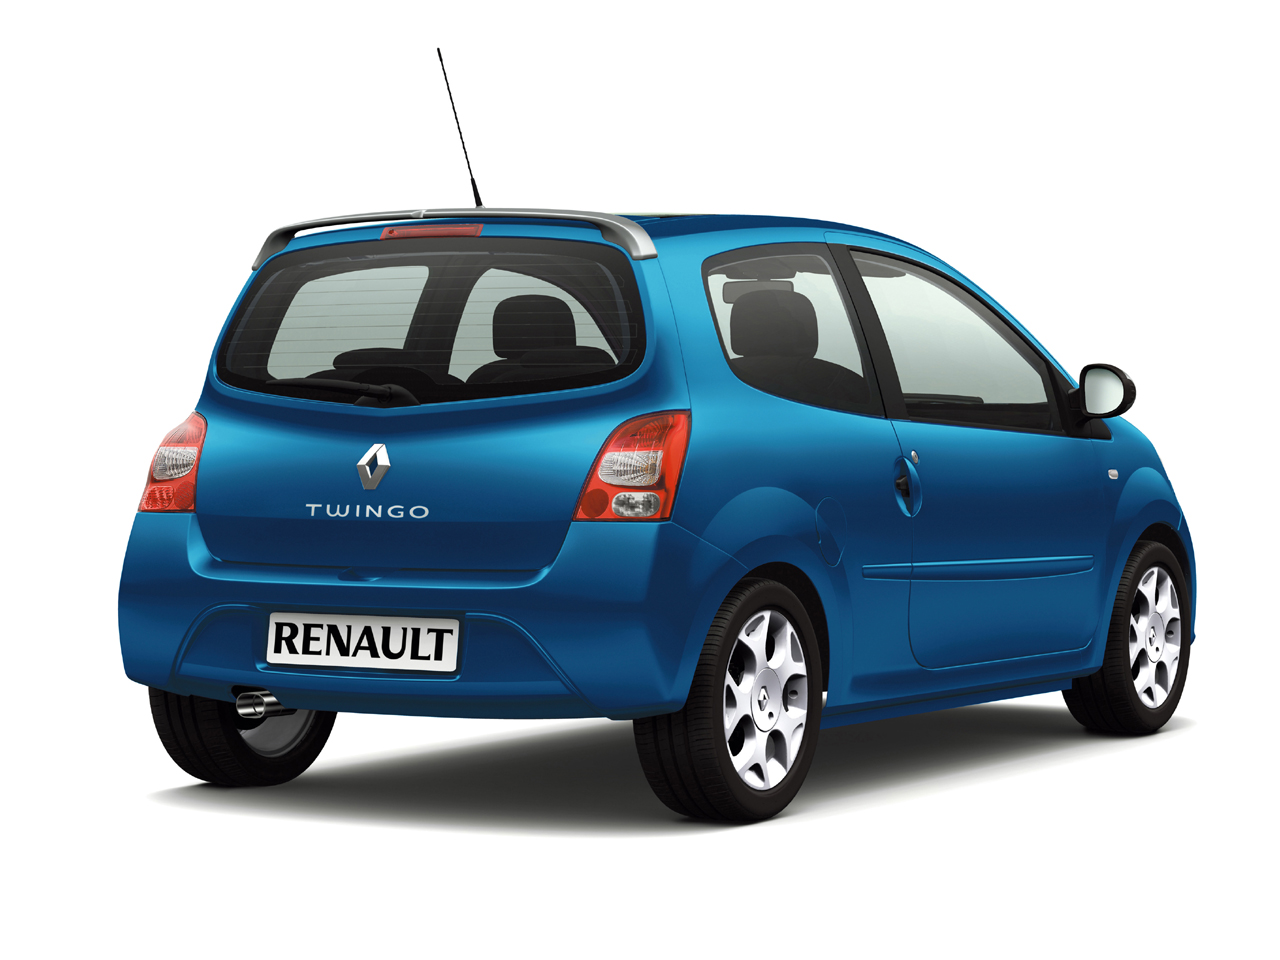 2012 renault twingo a car review. Black Bedroom Furniture Sets. Home Design Ideas